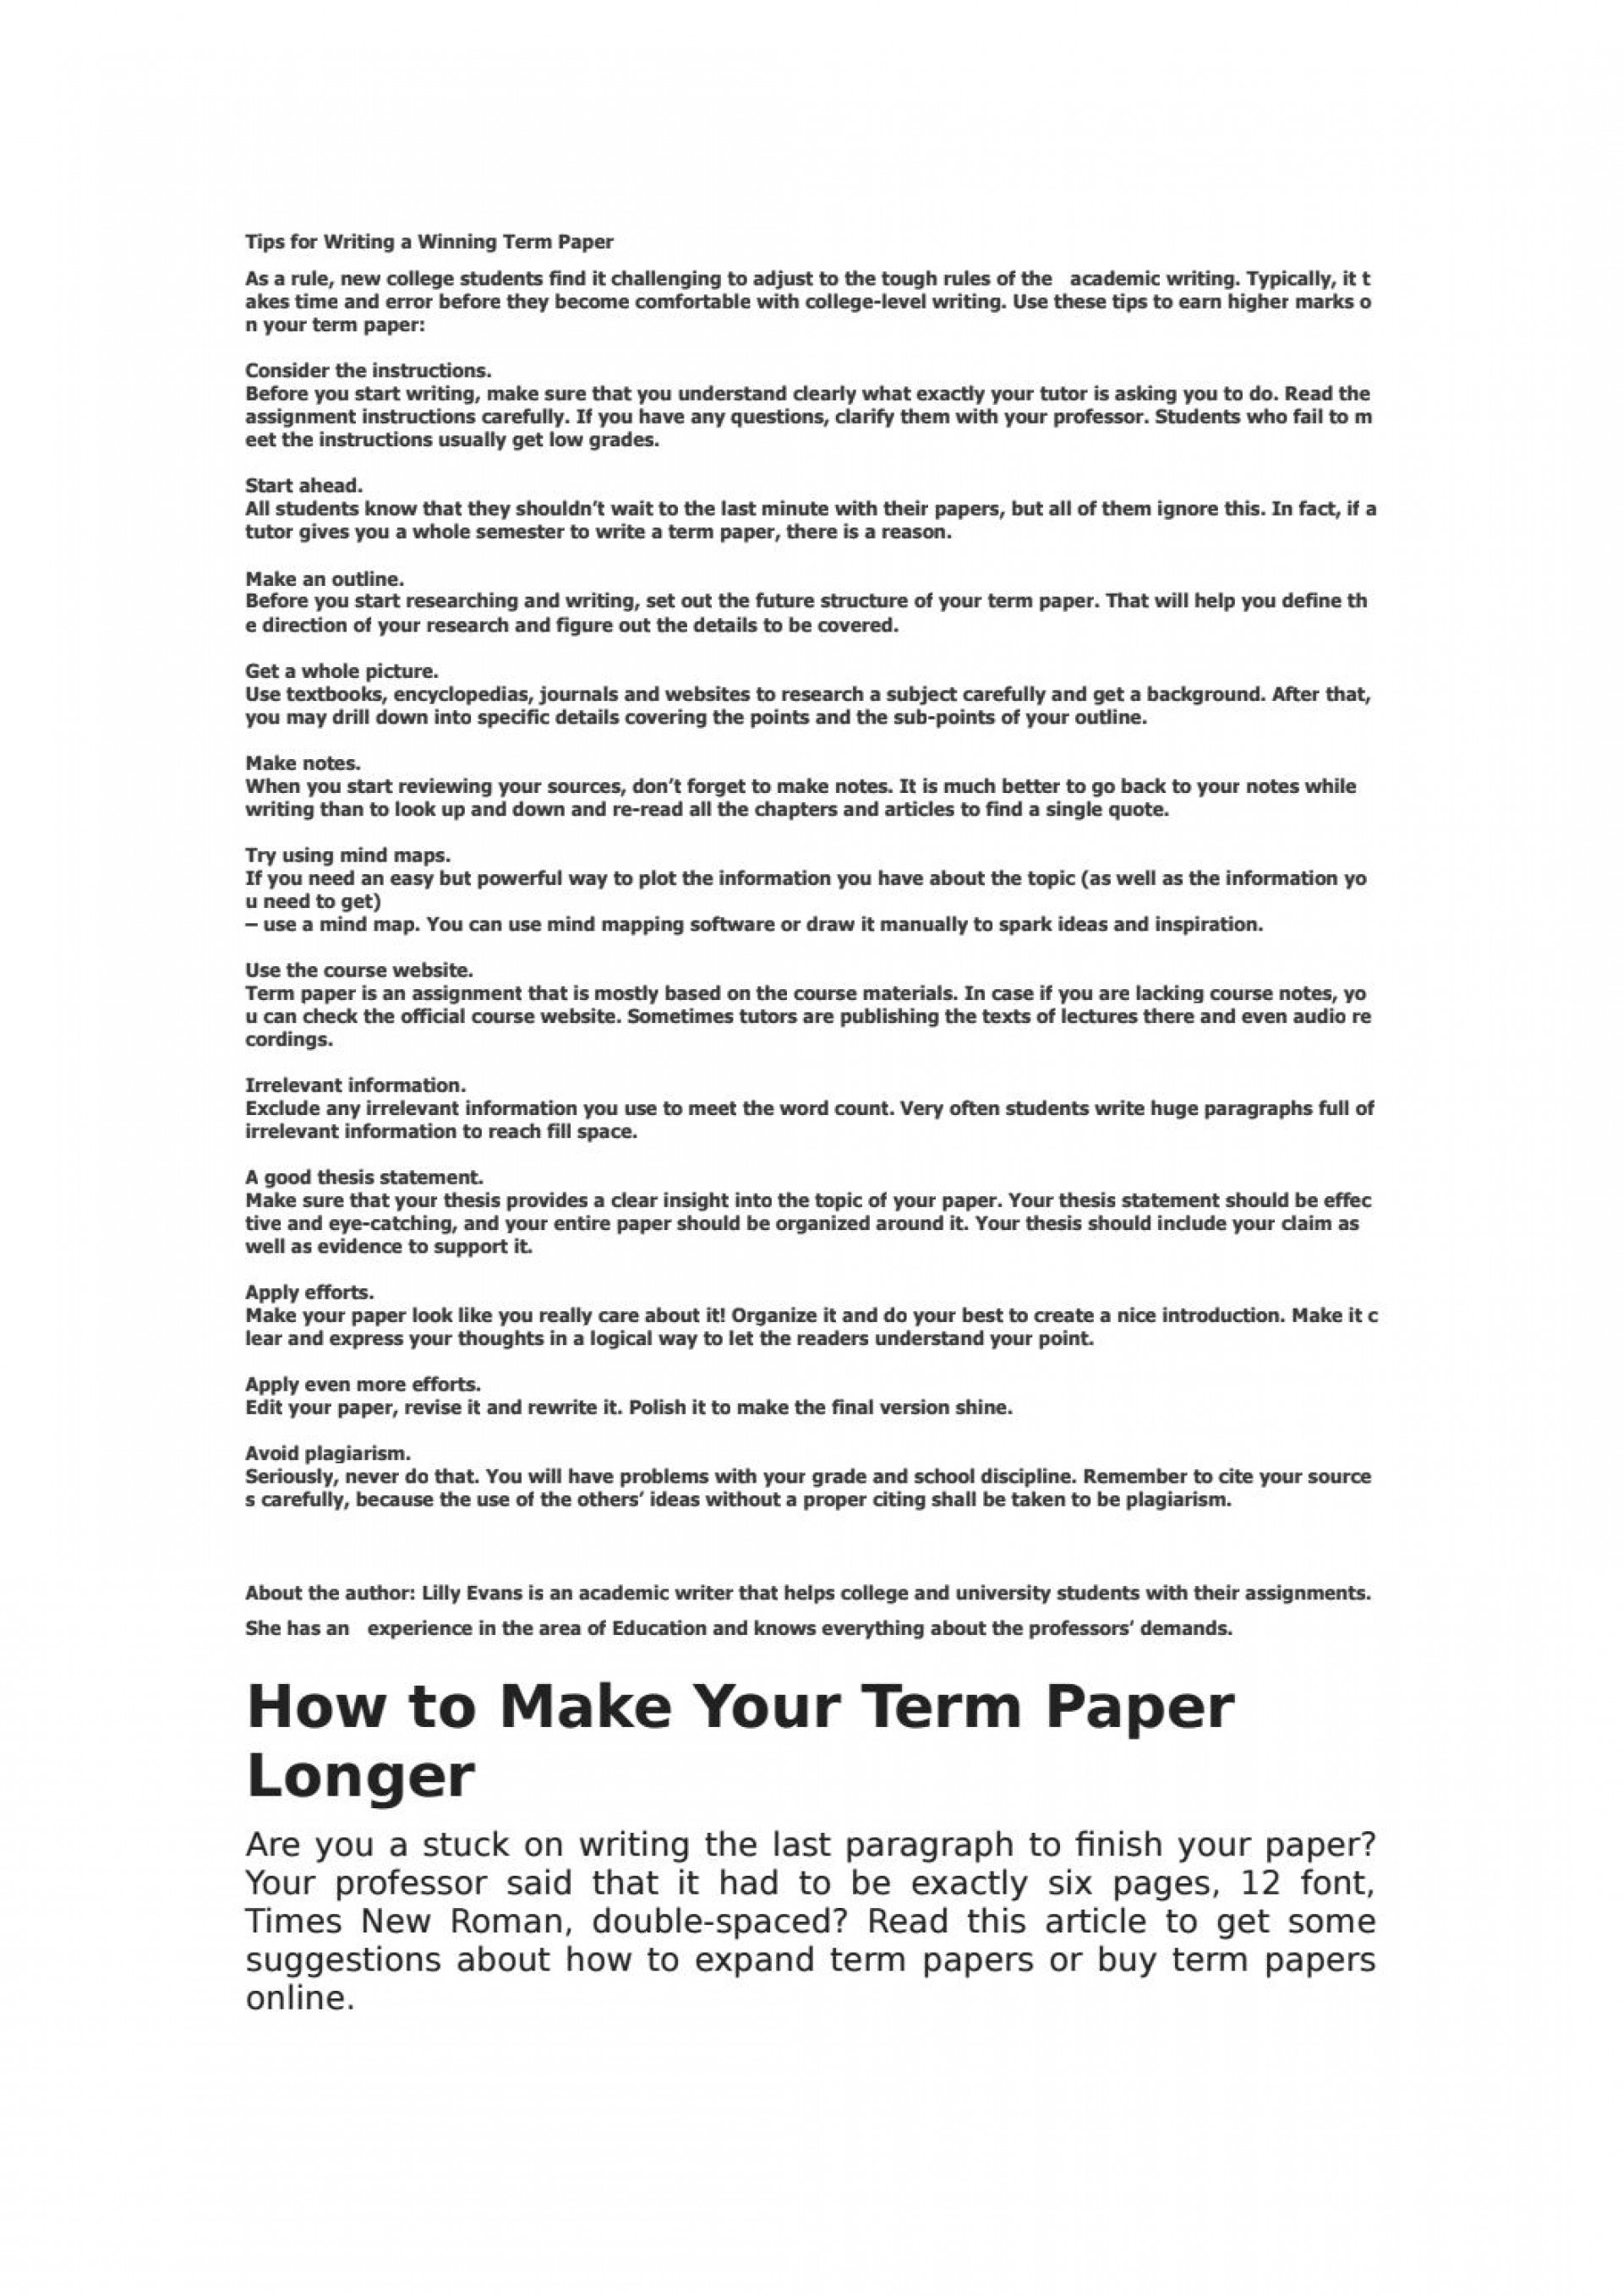 013 How To Make An Outline For Term Paper Research Page 1 Amazing A Create 1920